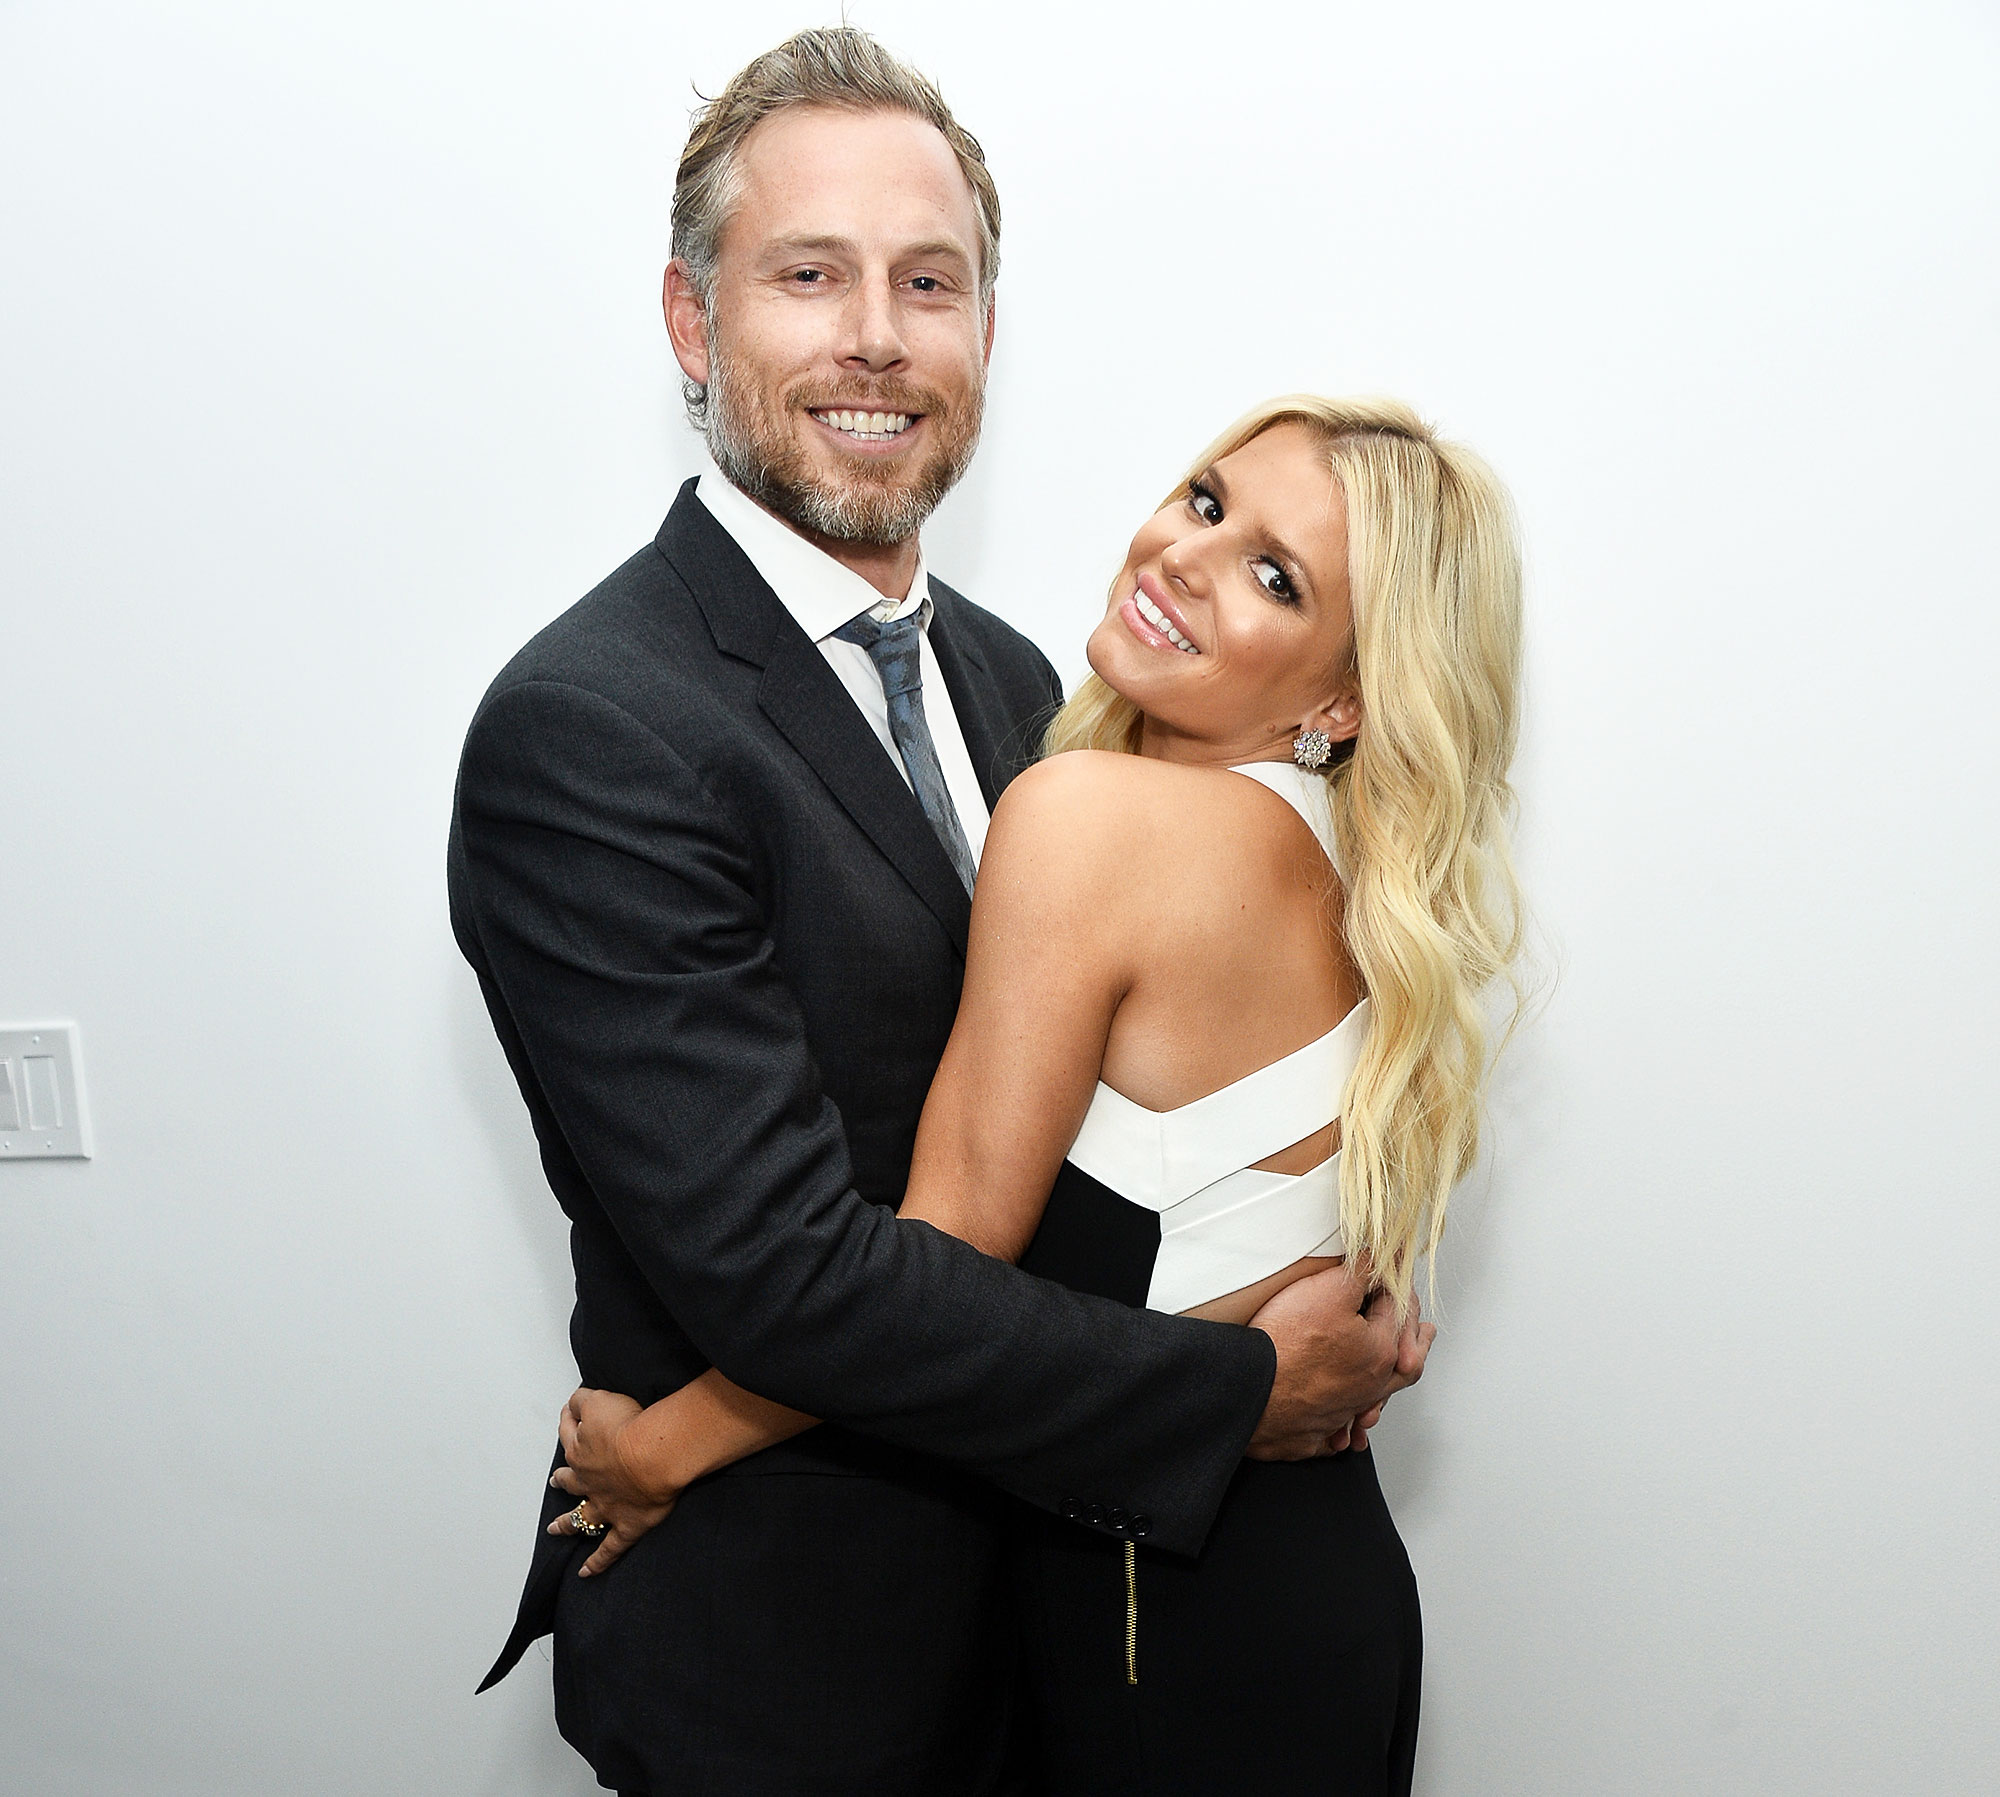 """Jessica Simpson Eric Johnson Celebrity Babies of 2019 - Singer Jessica Simpson and her husband Eric Johnson attend a special preview of """"The Gleason Project"""" at ZEFR Warehouse on April 23, 2015 in Venice, California."""